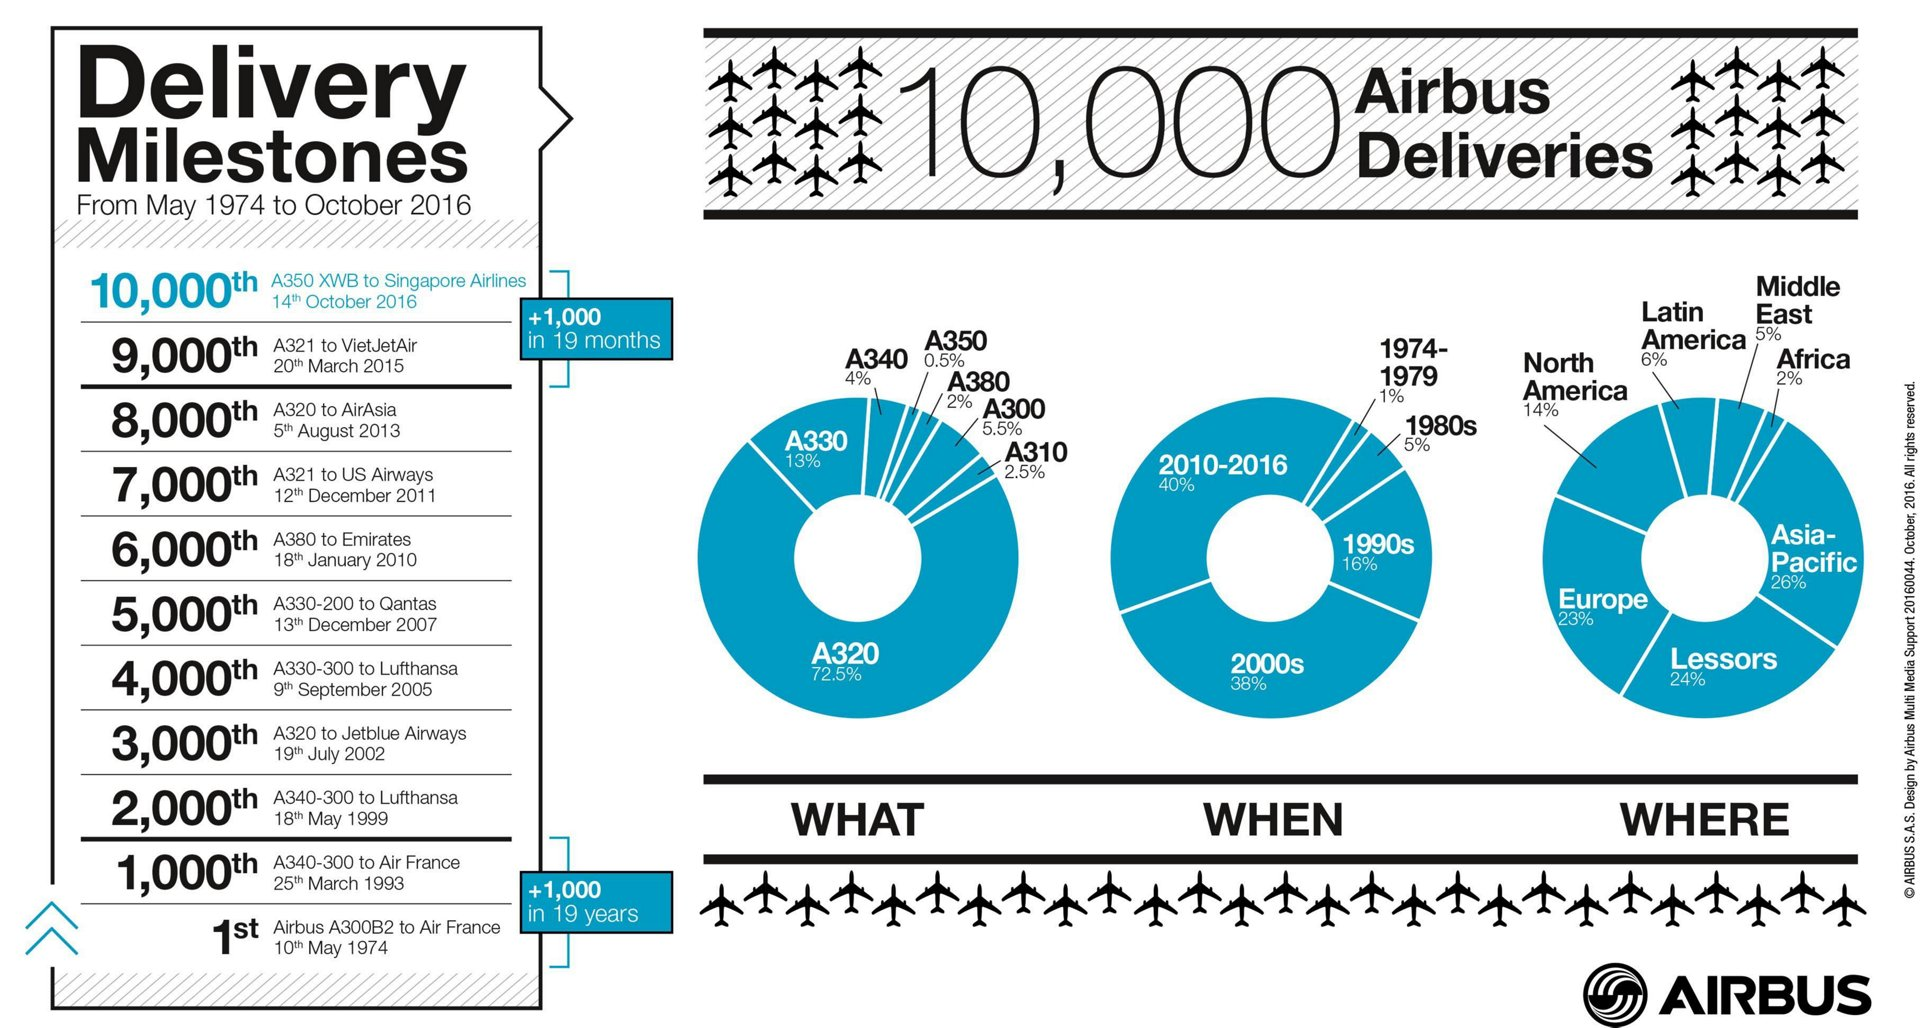 Airbus 10,000th delivery_Infographic 2